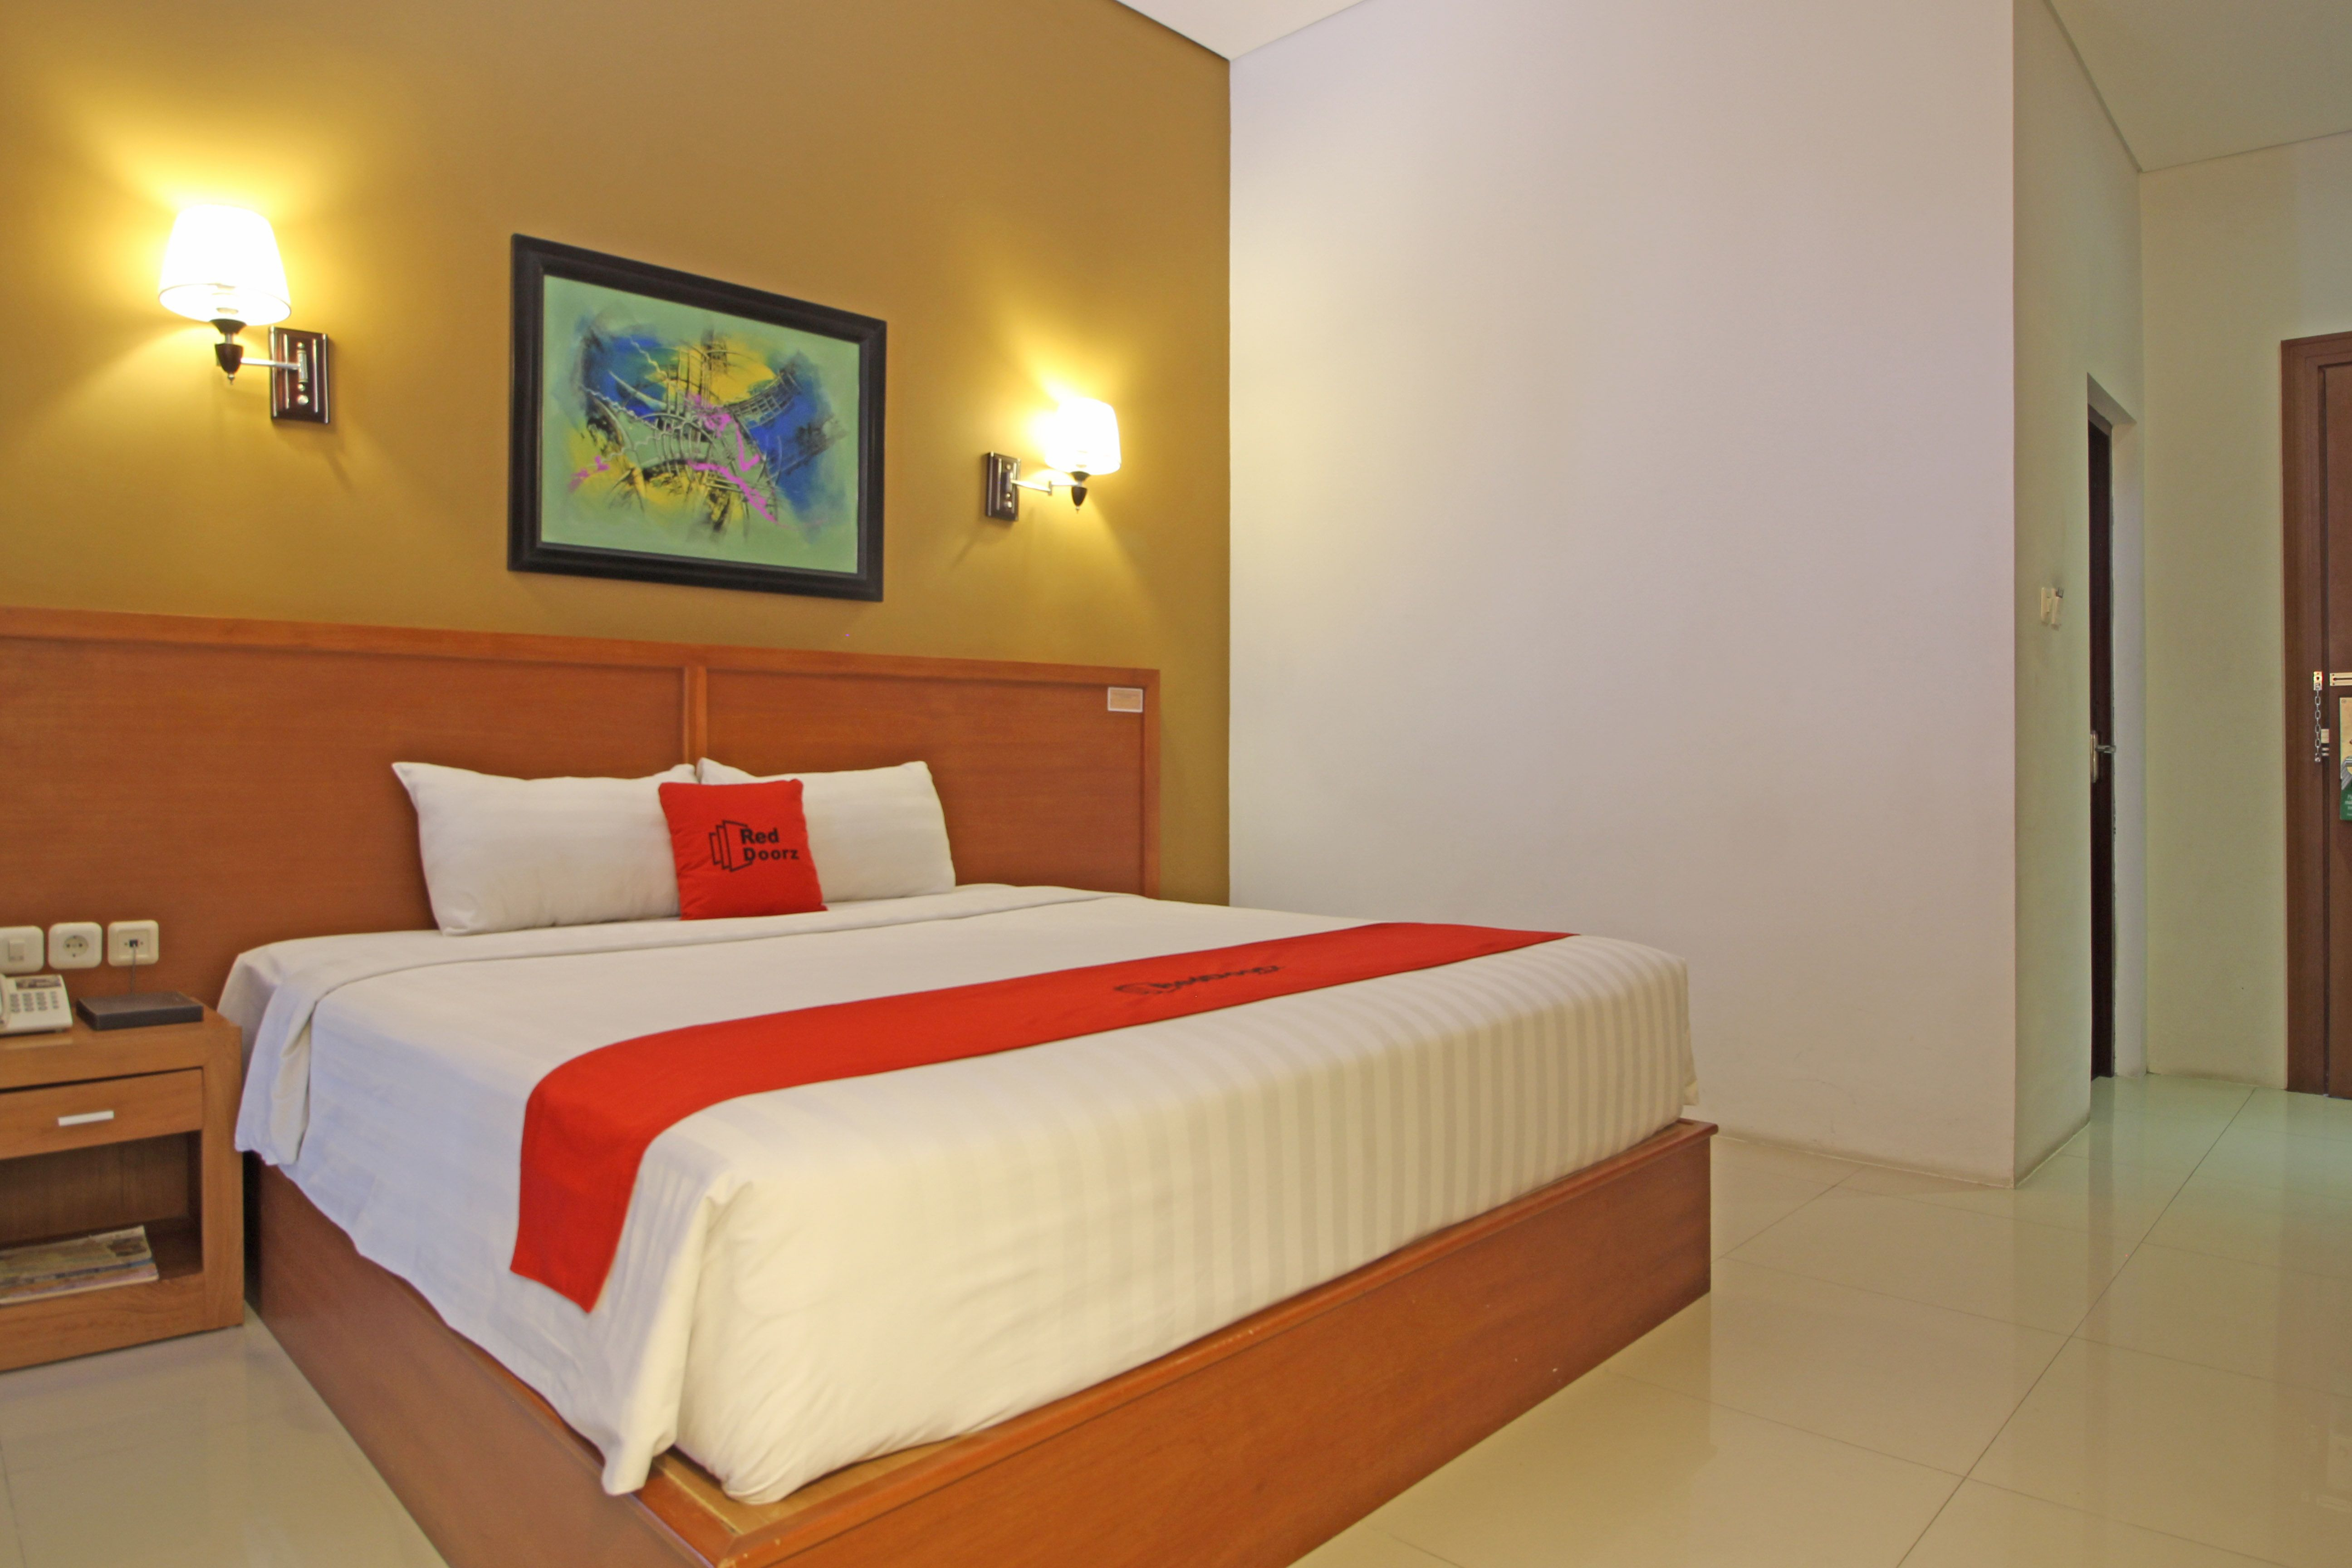 RedDoorz Premium near Sleman City Hall, Sleman